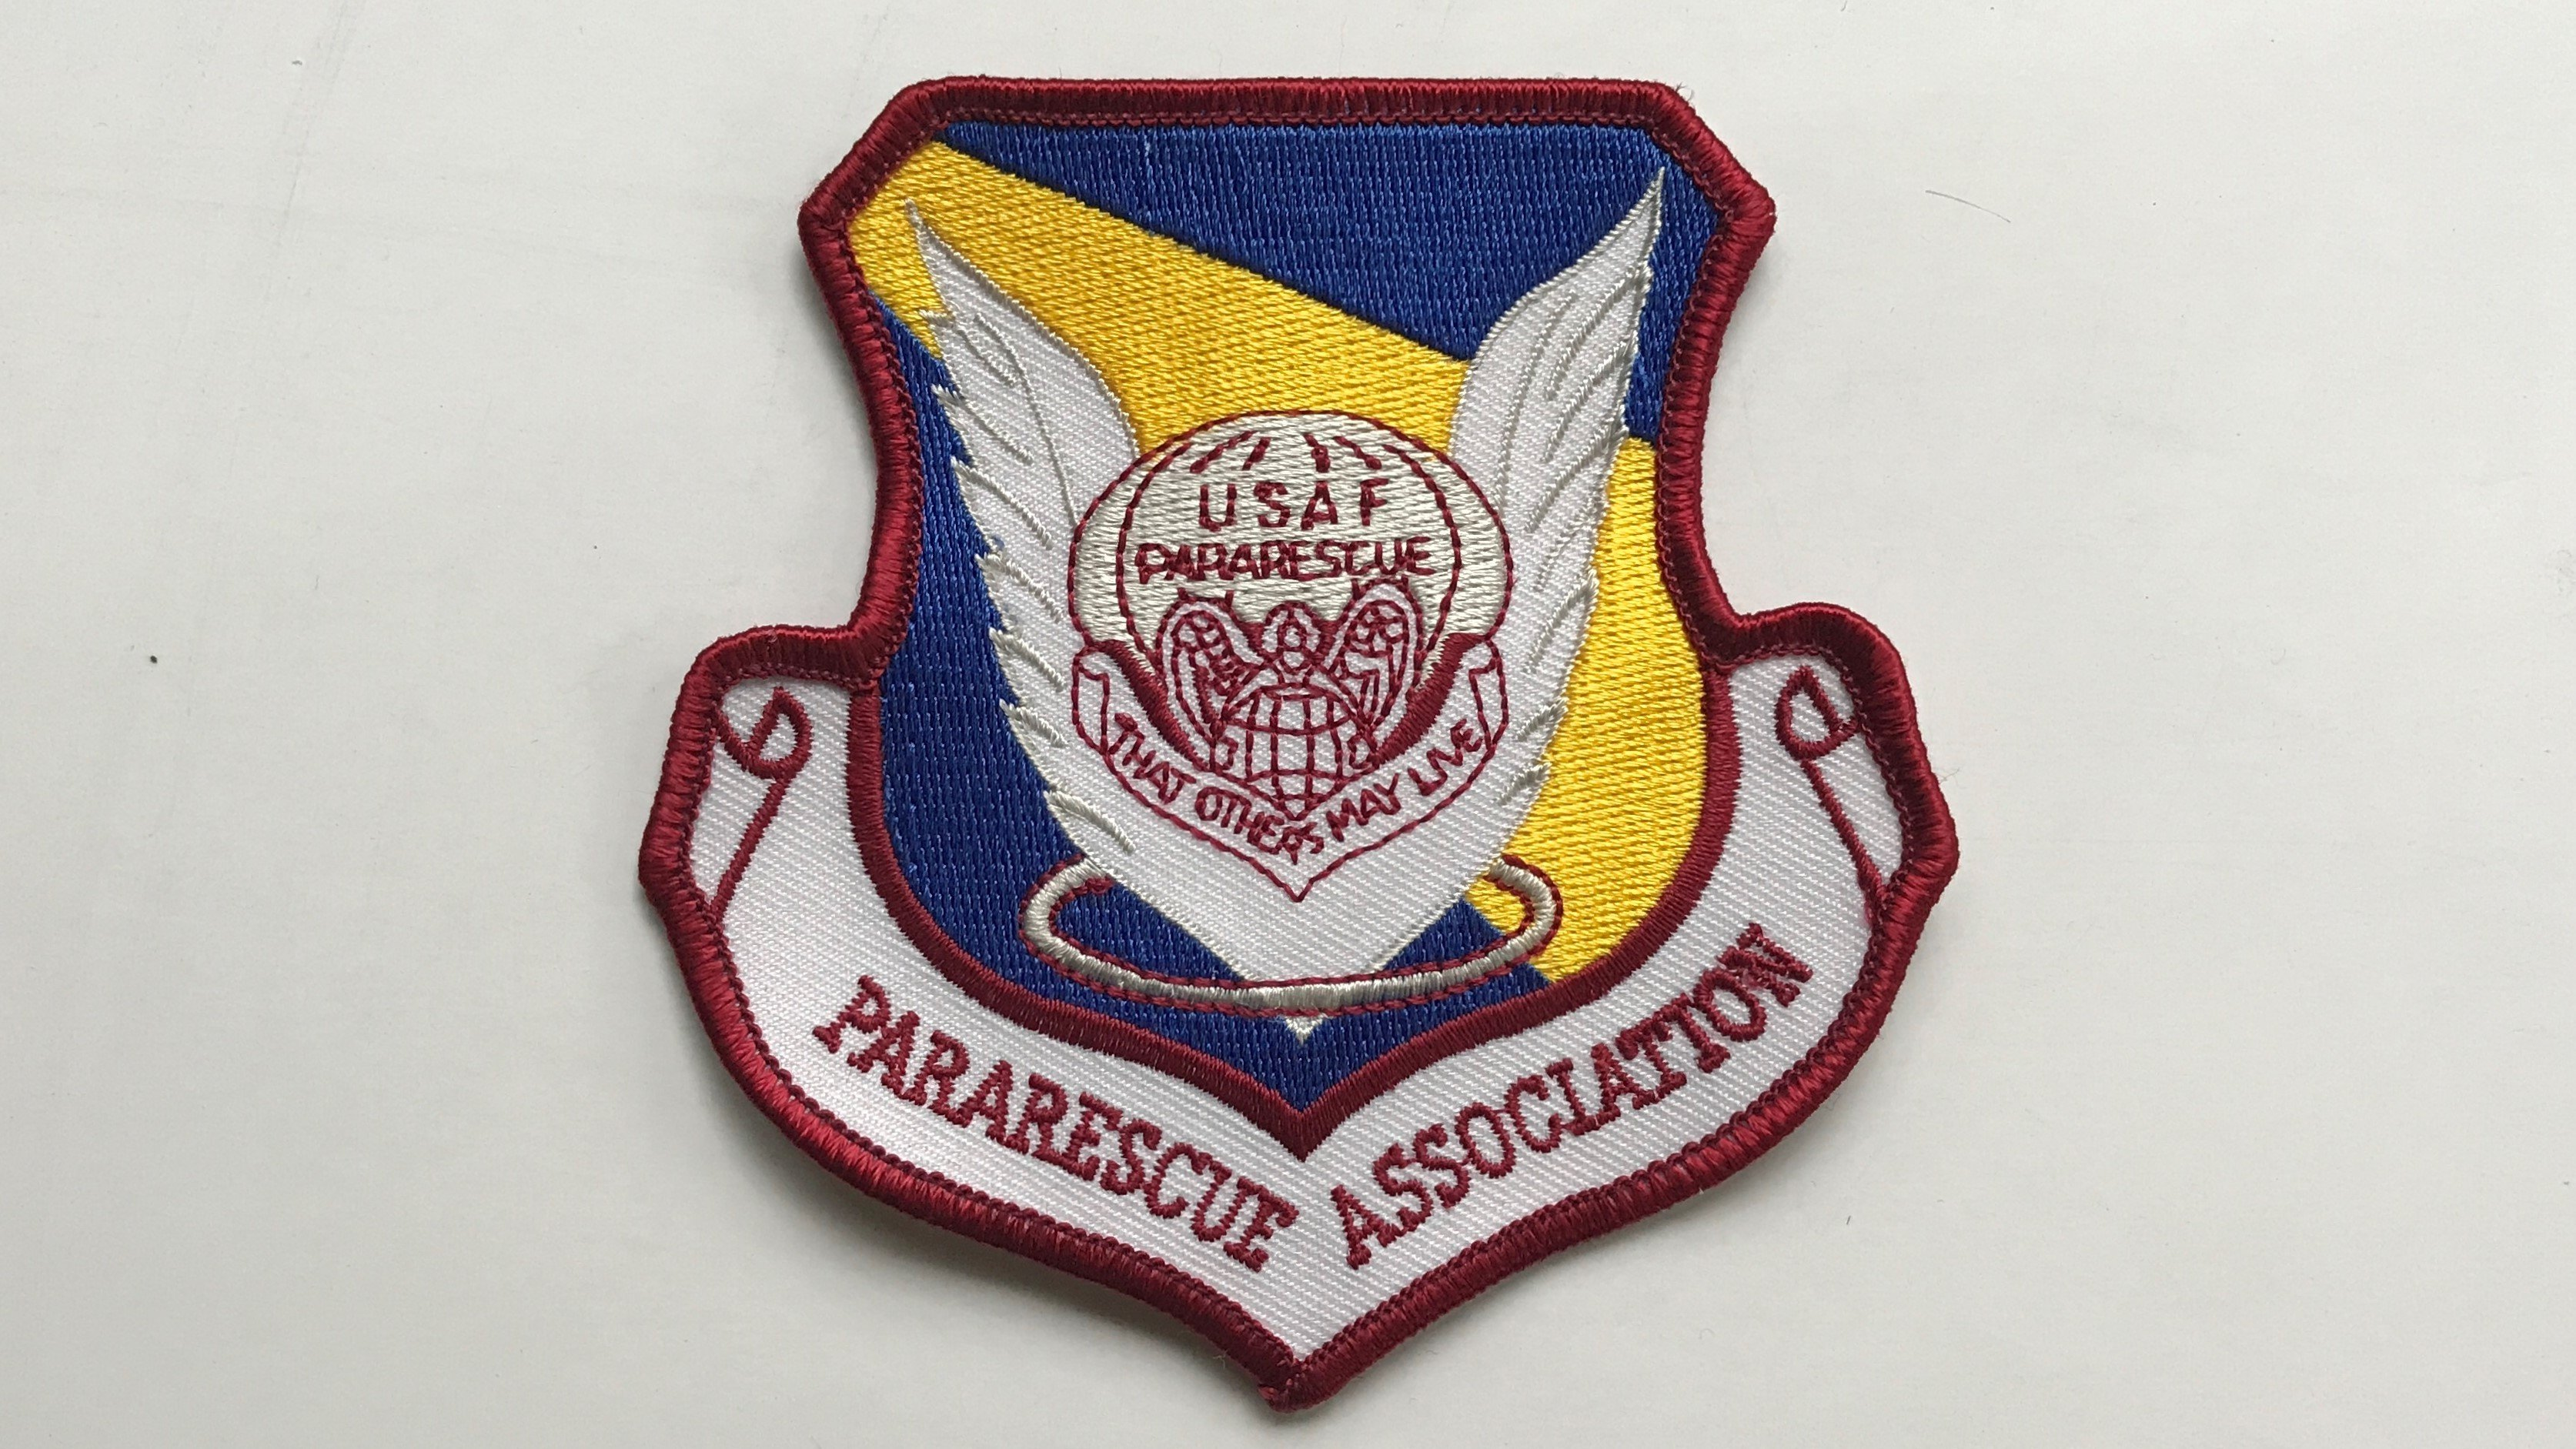 pja/ PJA Patch - PJA 4 Inch, 5 color embroidered patch 01-0012